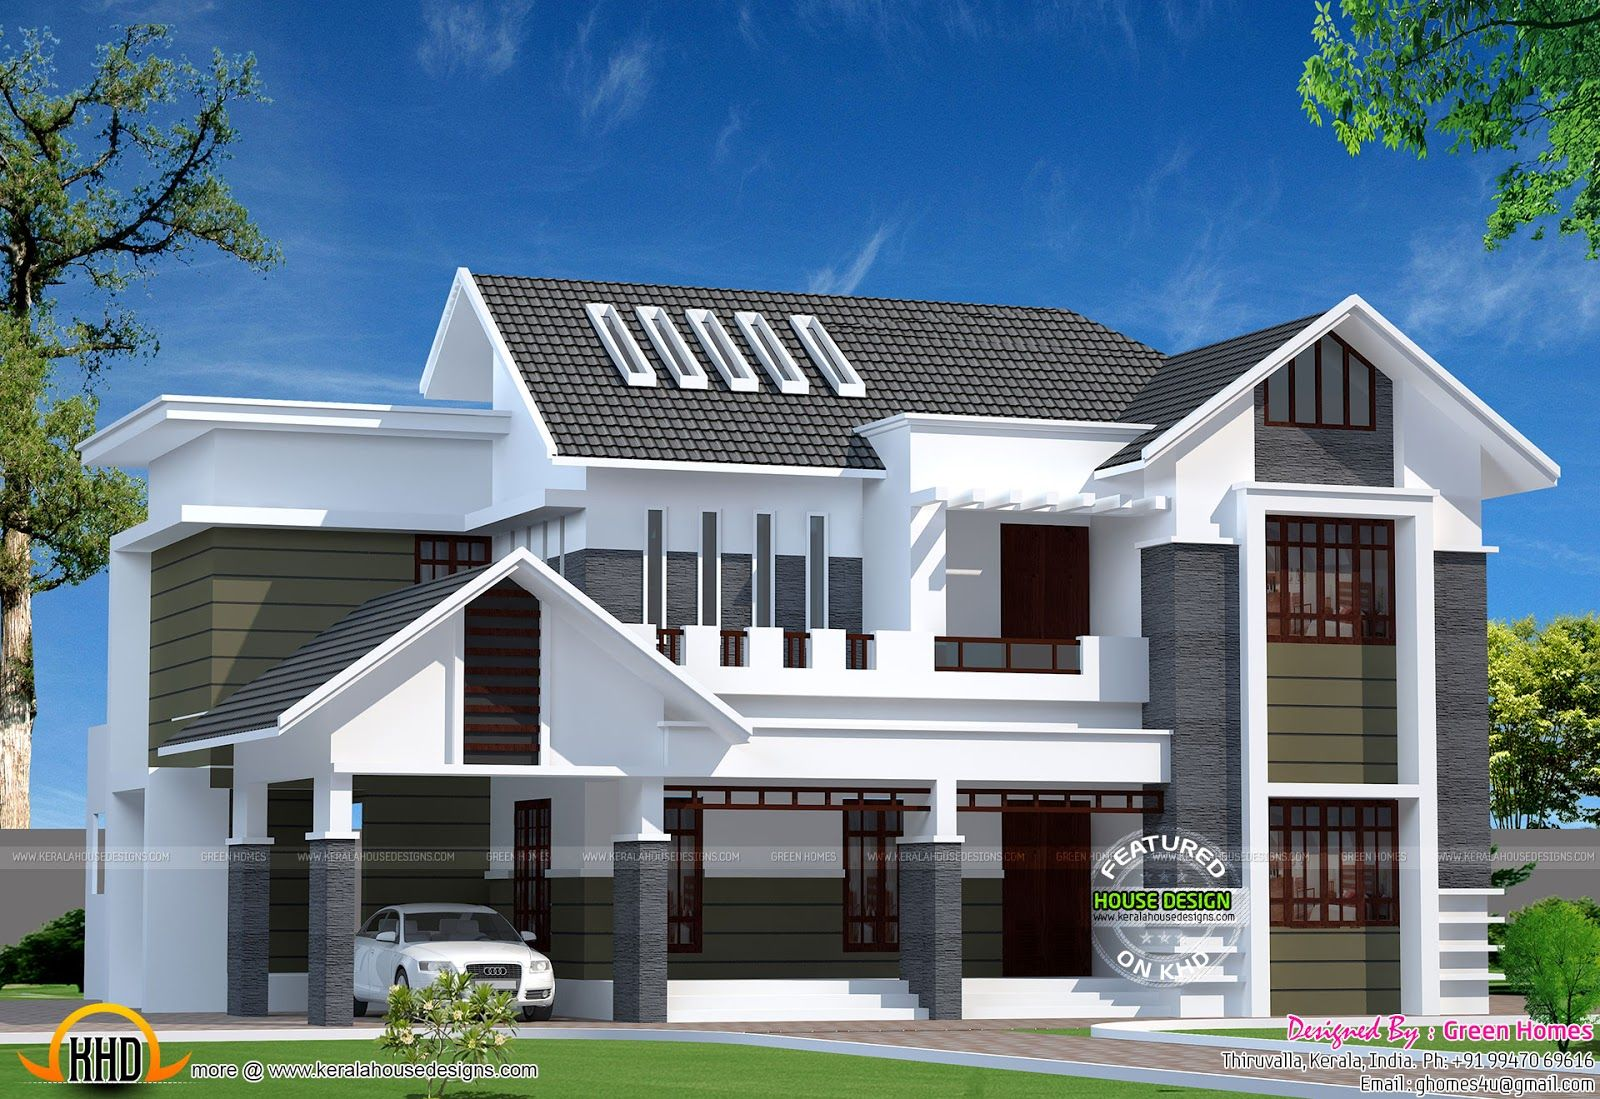 2800 Sq Ft Modern Kerala Home Kerala House Design Kerala